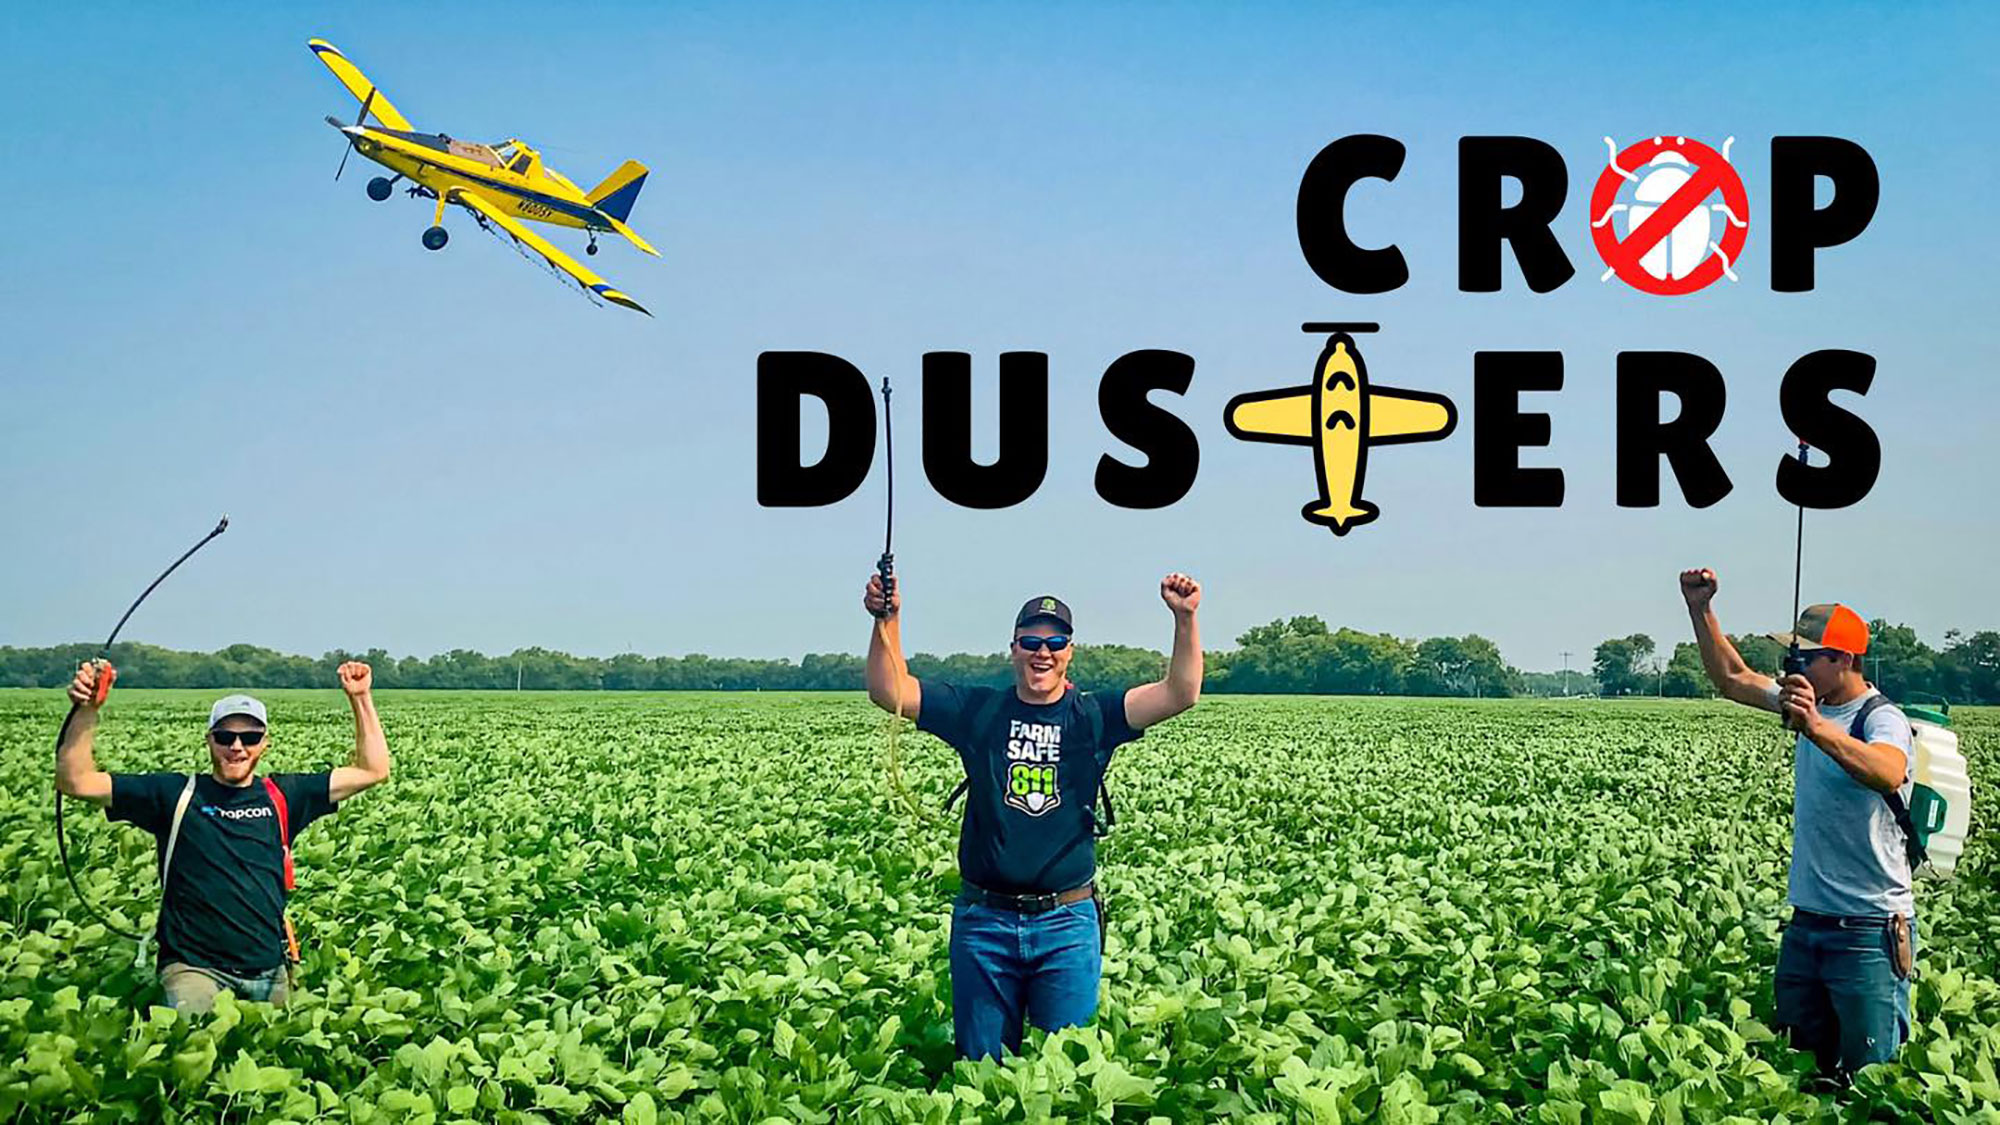 peterson-farm-brothers-crop-dusters